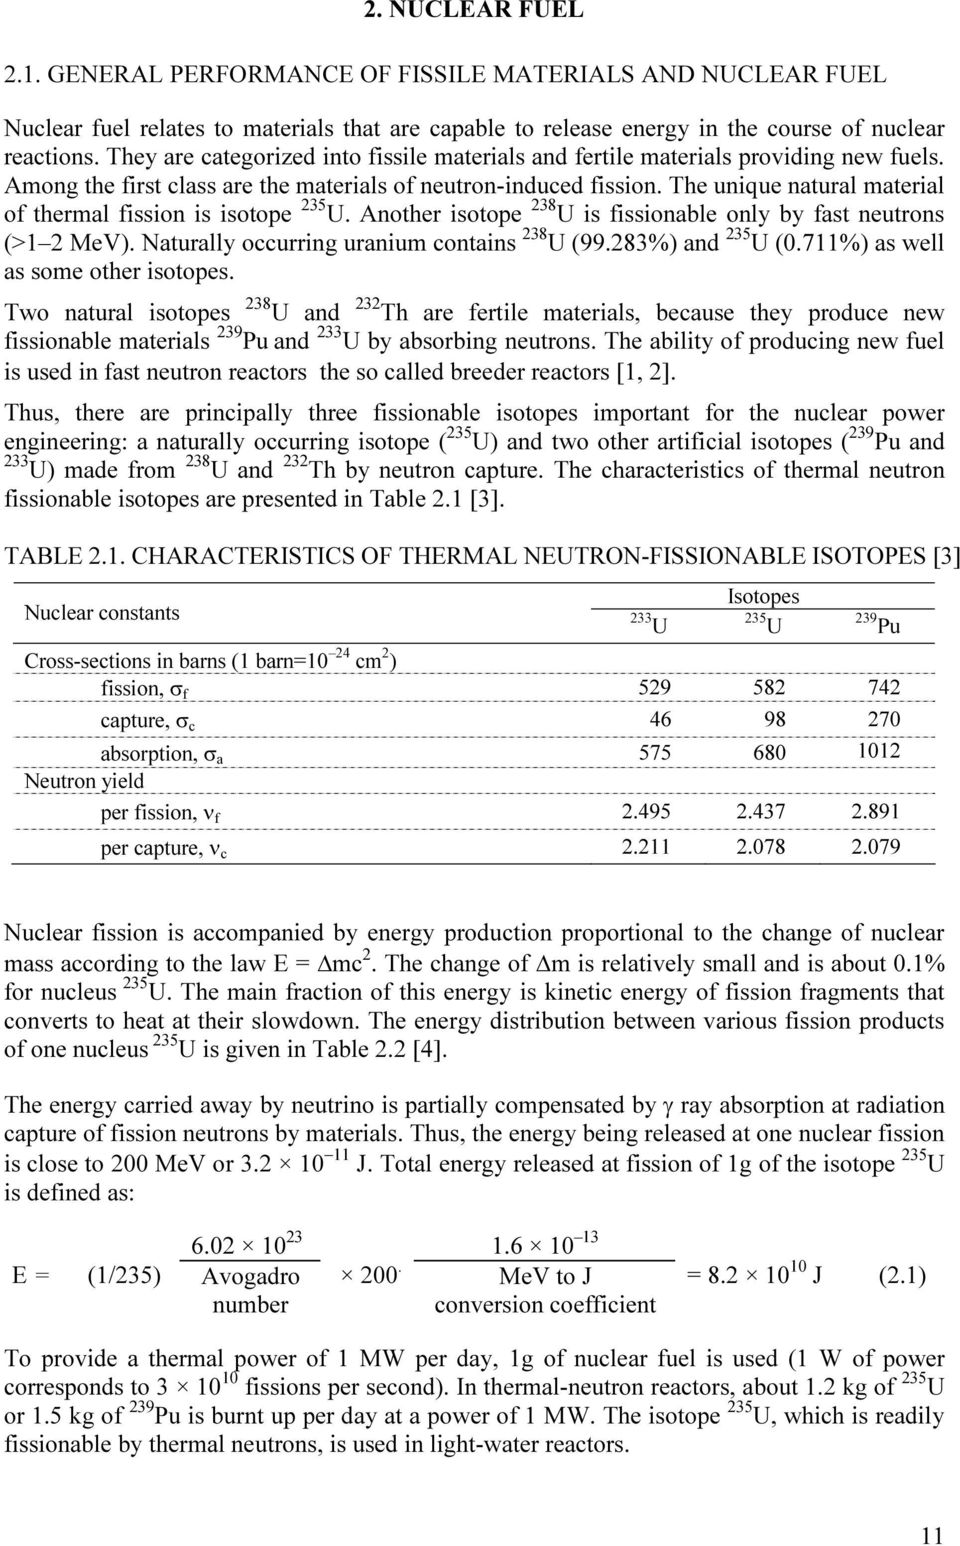 The unique natural material of thermal fission is isotope 235 U. Another isotope 238 U is fissionable only by fast neutrons (>1 2 MeV). Naturally occurring uranium contains 238 U (99.